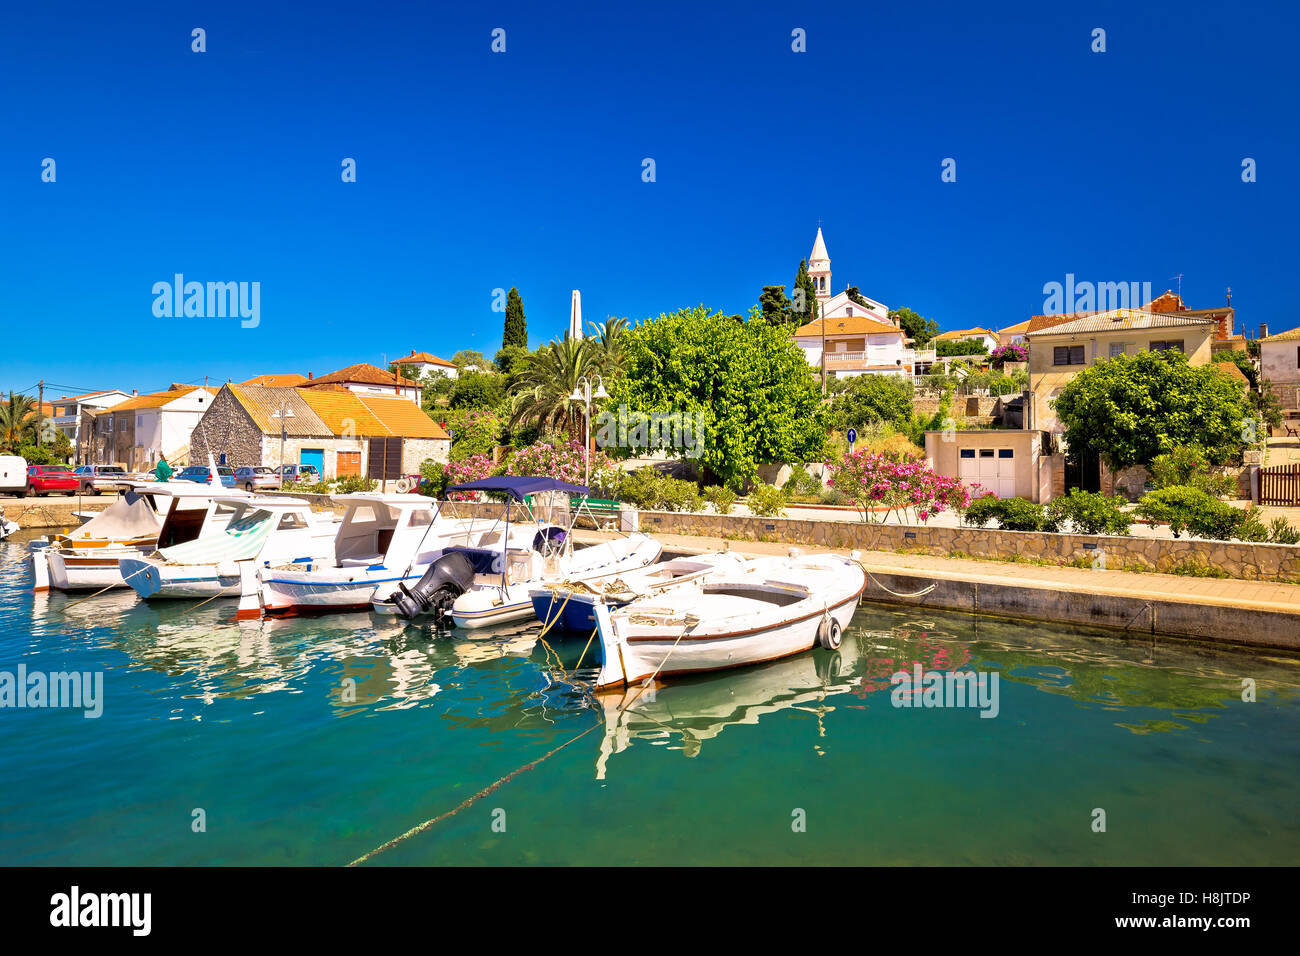 Town of Kali turquoise waterfront, island of Ugljan, Croatia - Stock Image